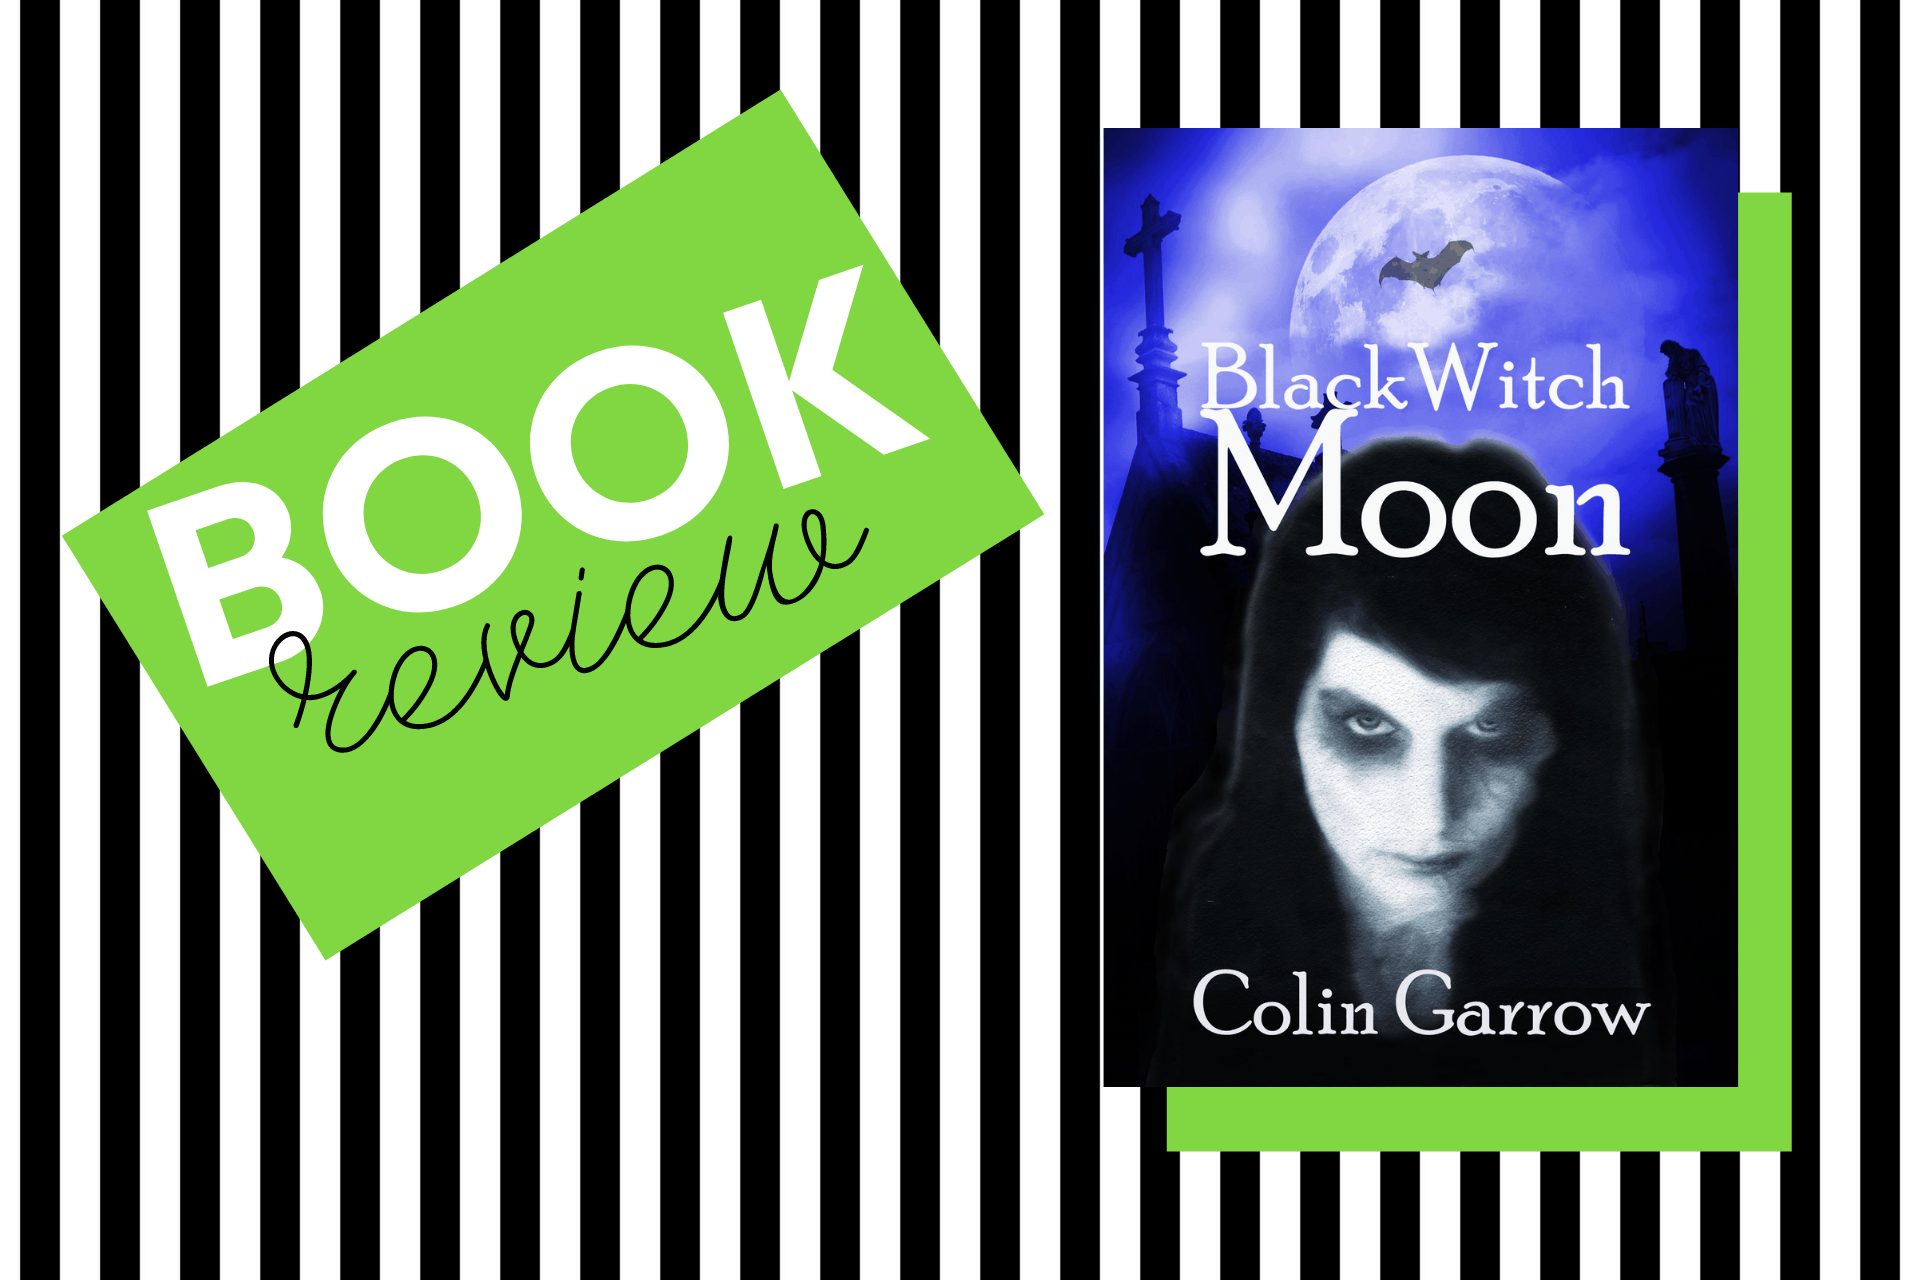 The cover of Black Witch Moon by Colin Garrow